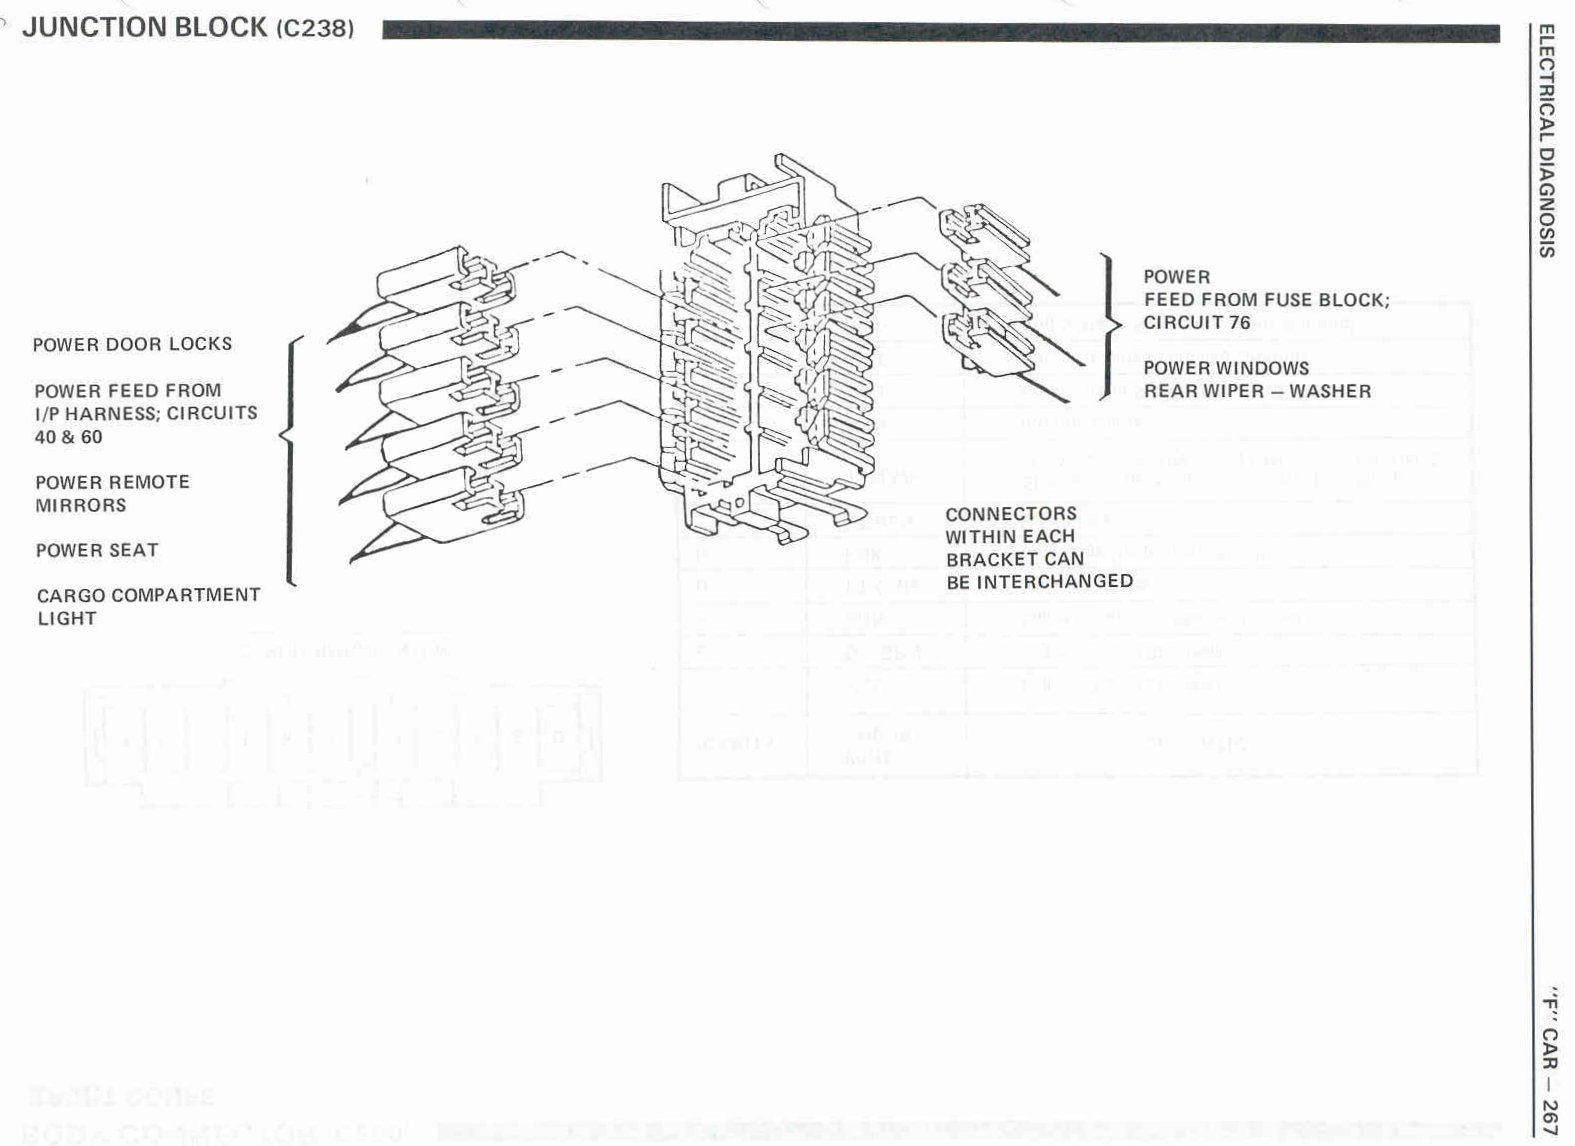 Mercury Topaz Fuse Box Diagram Wiring Schematic Auto 1967 Ford Fairlane Pic 6233946240685787395 Moreover 5aef0d29c1820a9a7fb8931e96d5d28e In Addition Besides